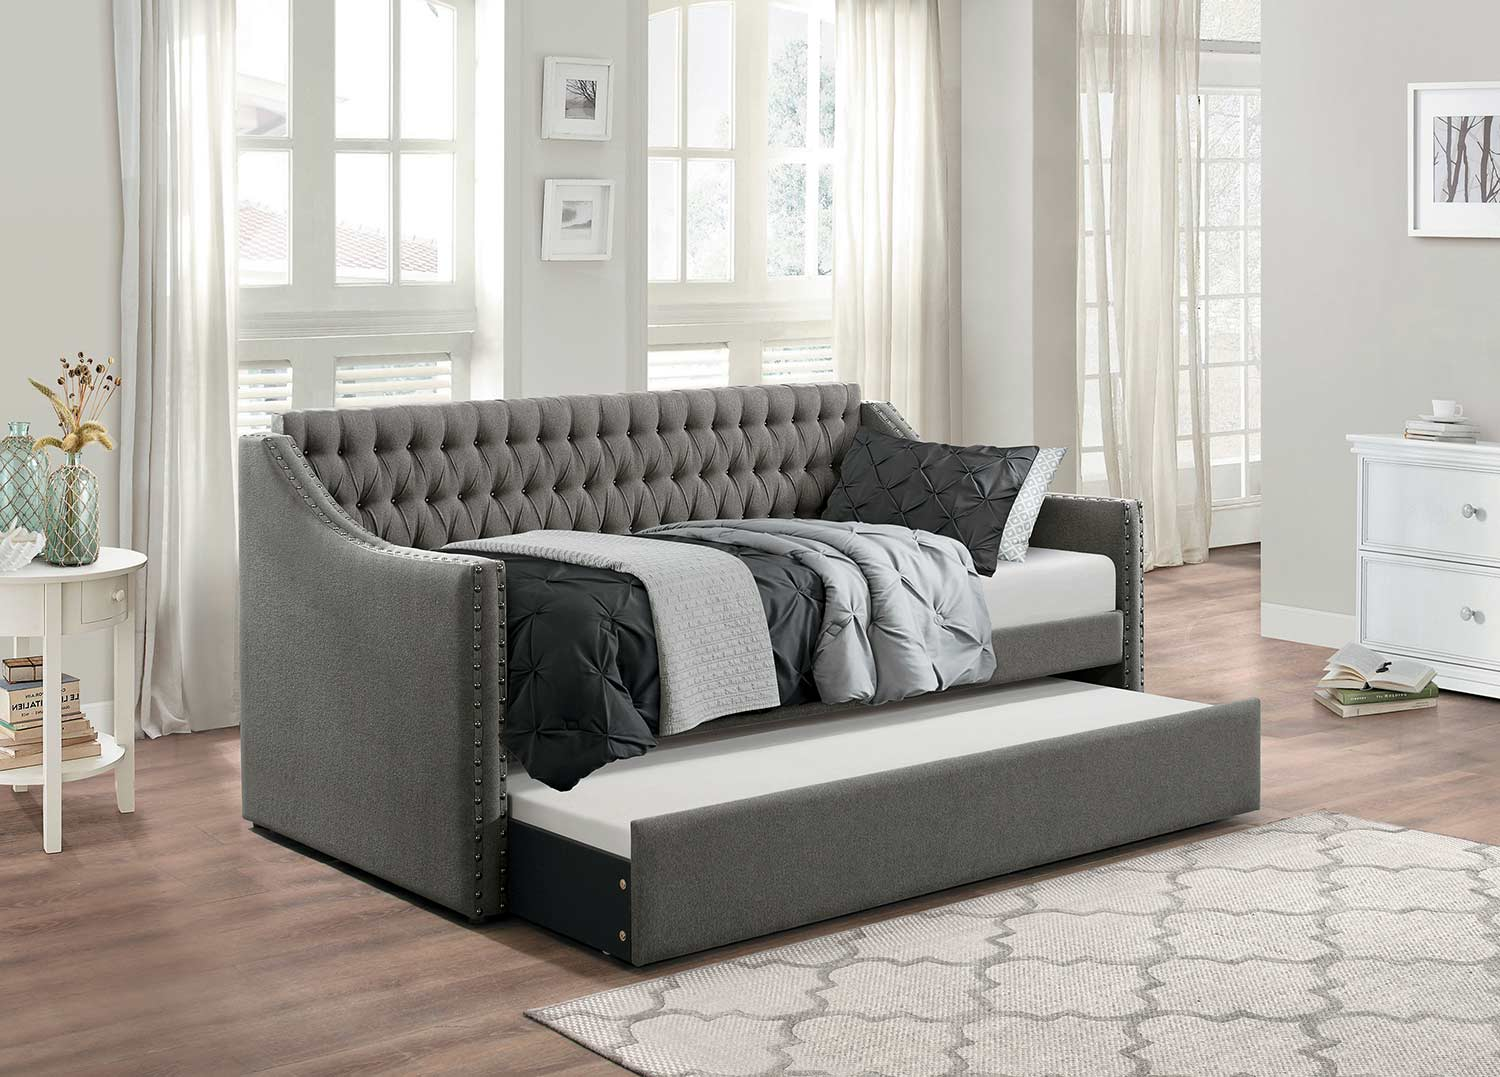 Homelegance Tulney Dark Gray Button Tufted Upholstered